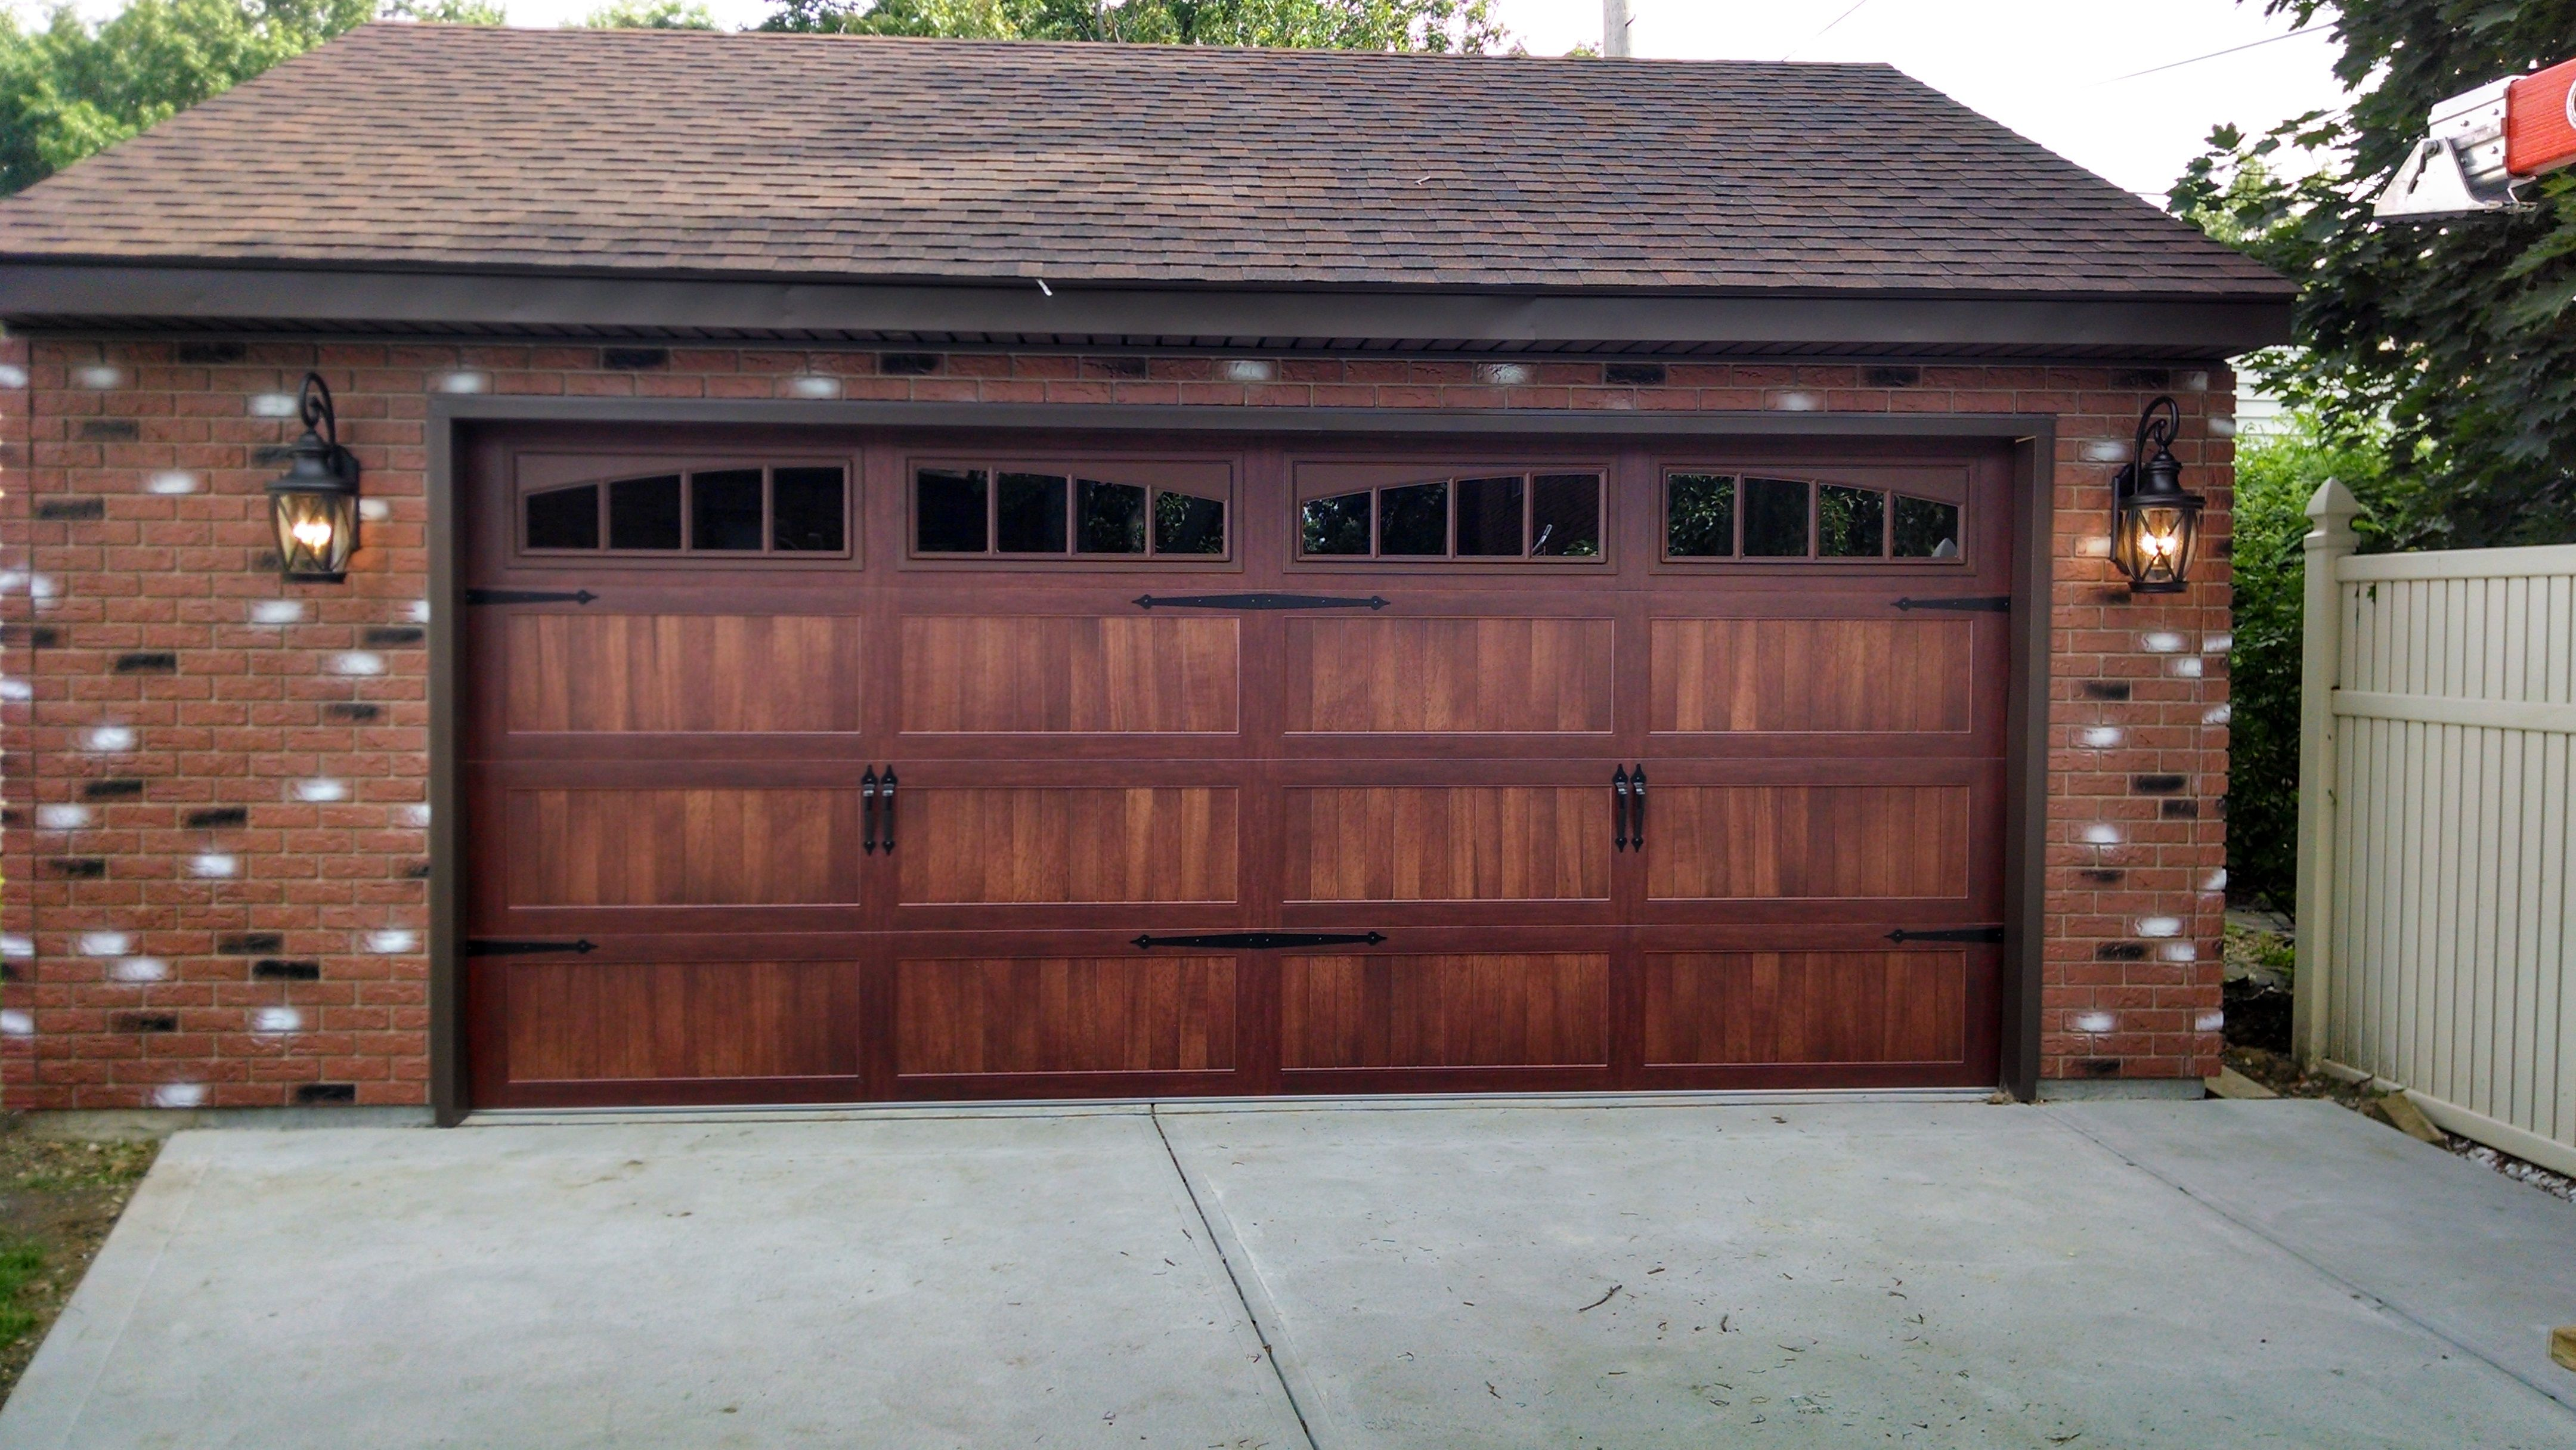 Classica northampton garage door white 9 x 8 no windows - 5916 C H I Mahogany Long Panel Carriage House With 2 2 Piece Arched Madison